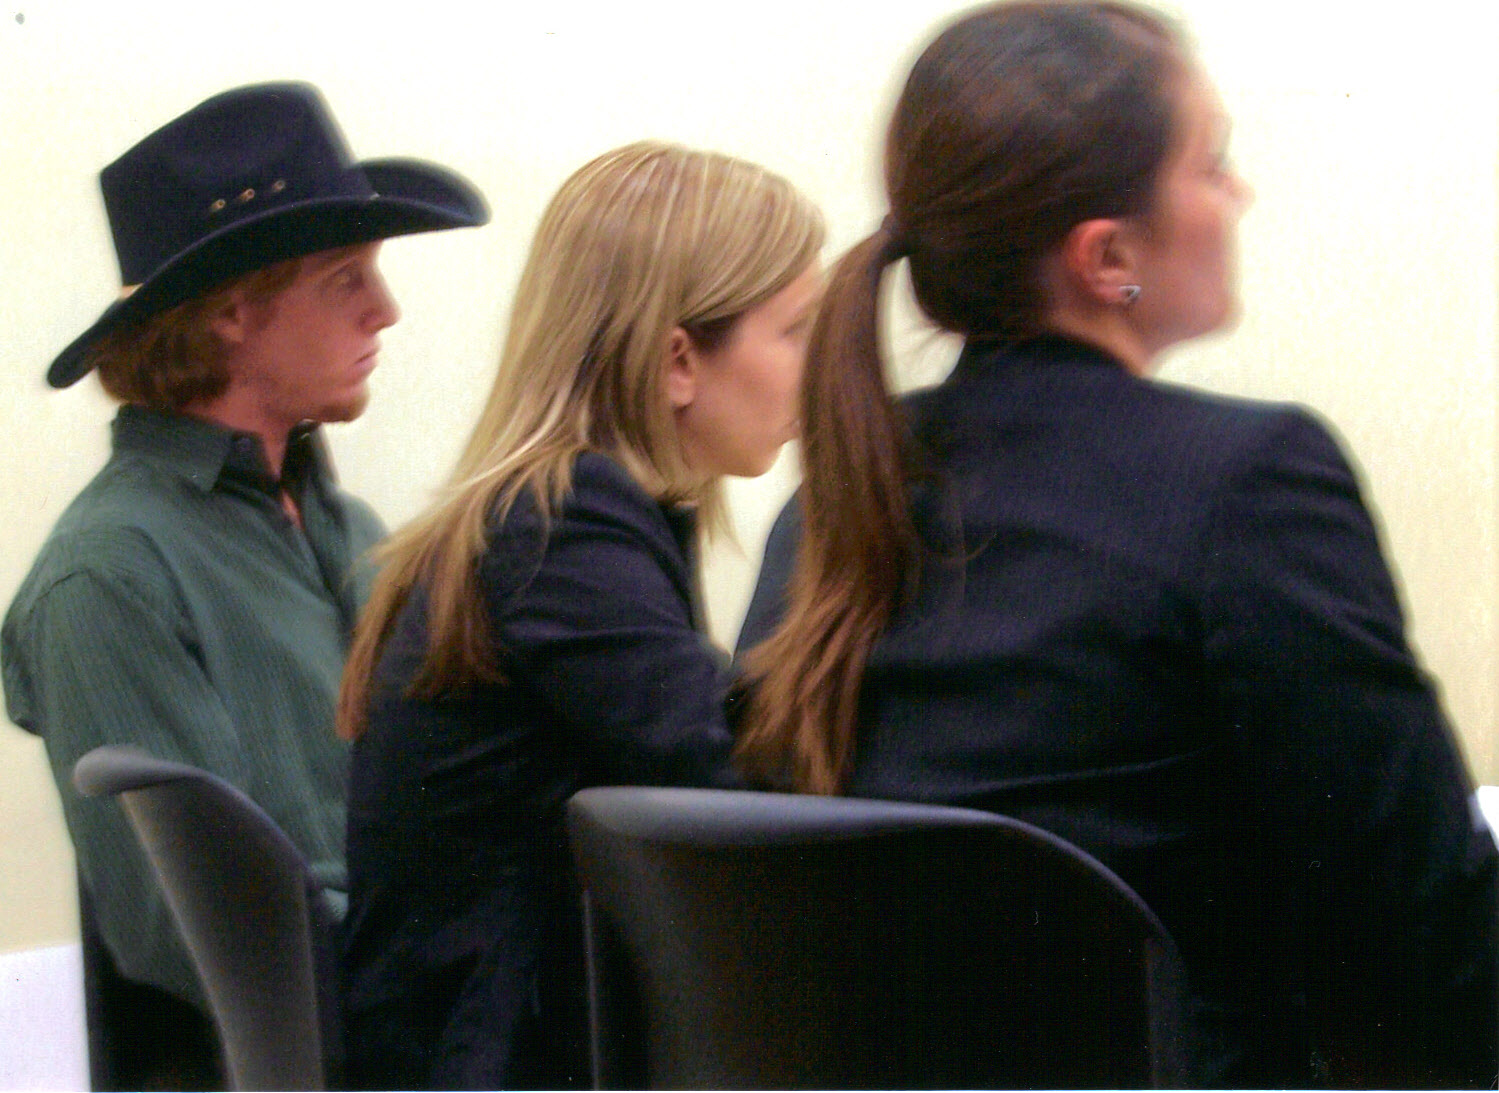 John Spellacy as Defendant Brace Breemer with Counsels Kristen Saam and Anna Beyer